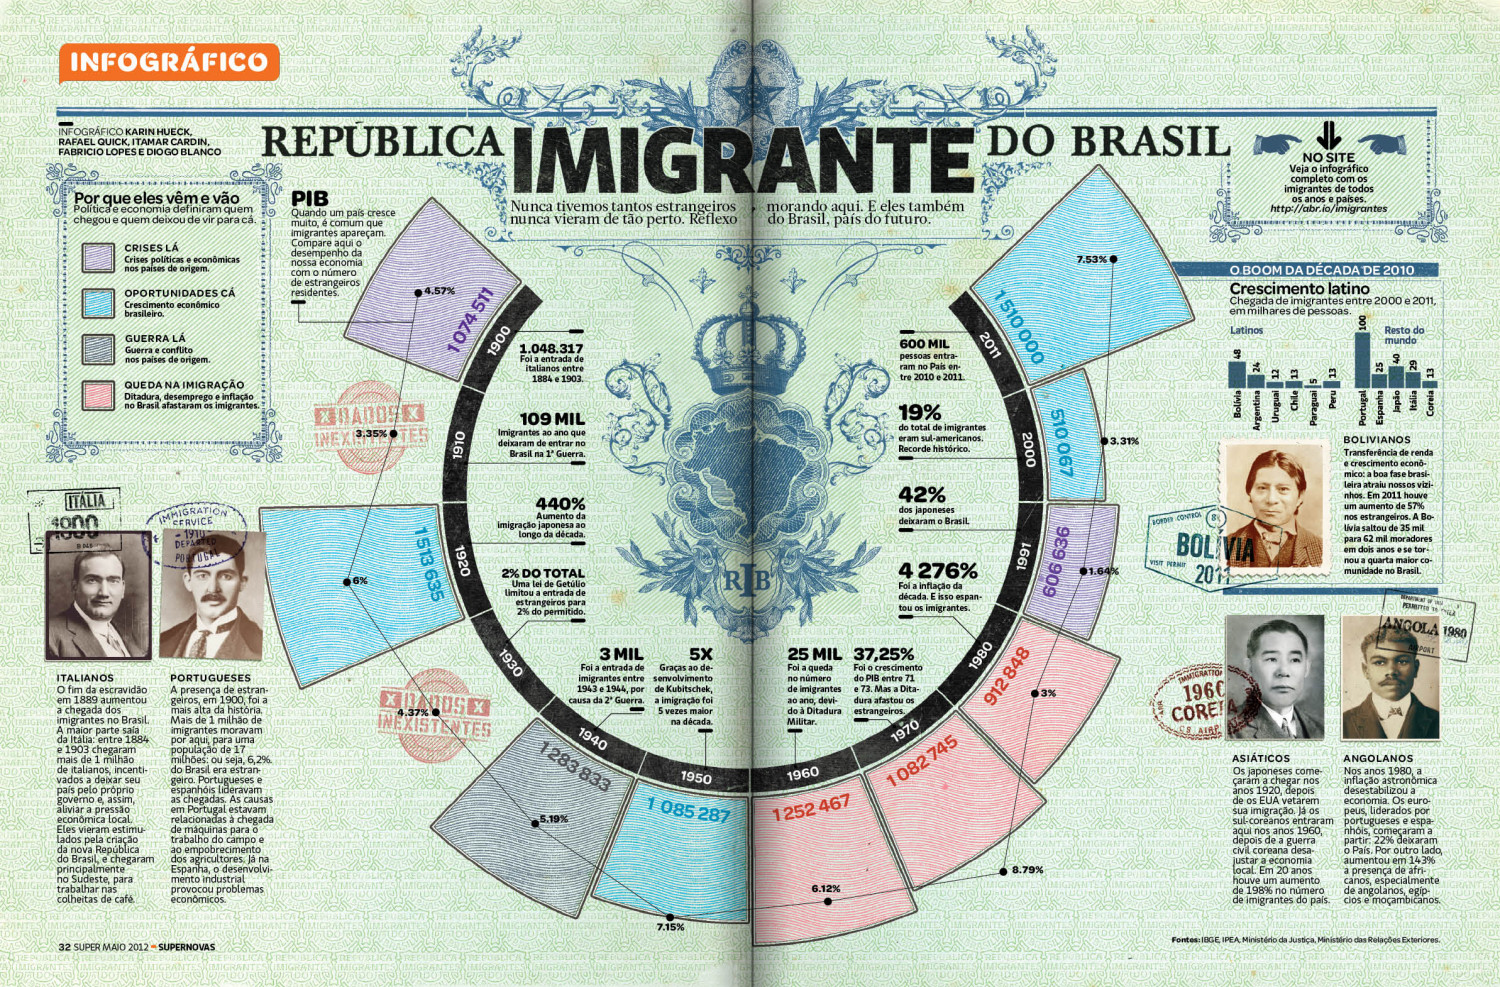 República Imigrante do Brasil Infographic